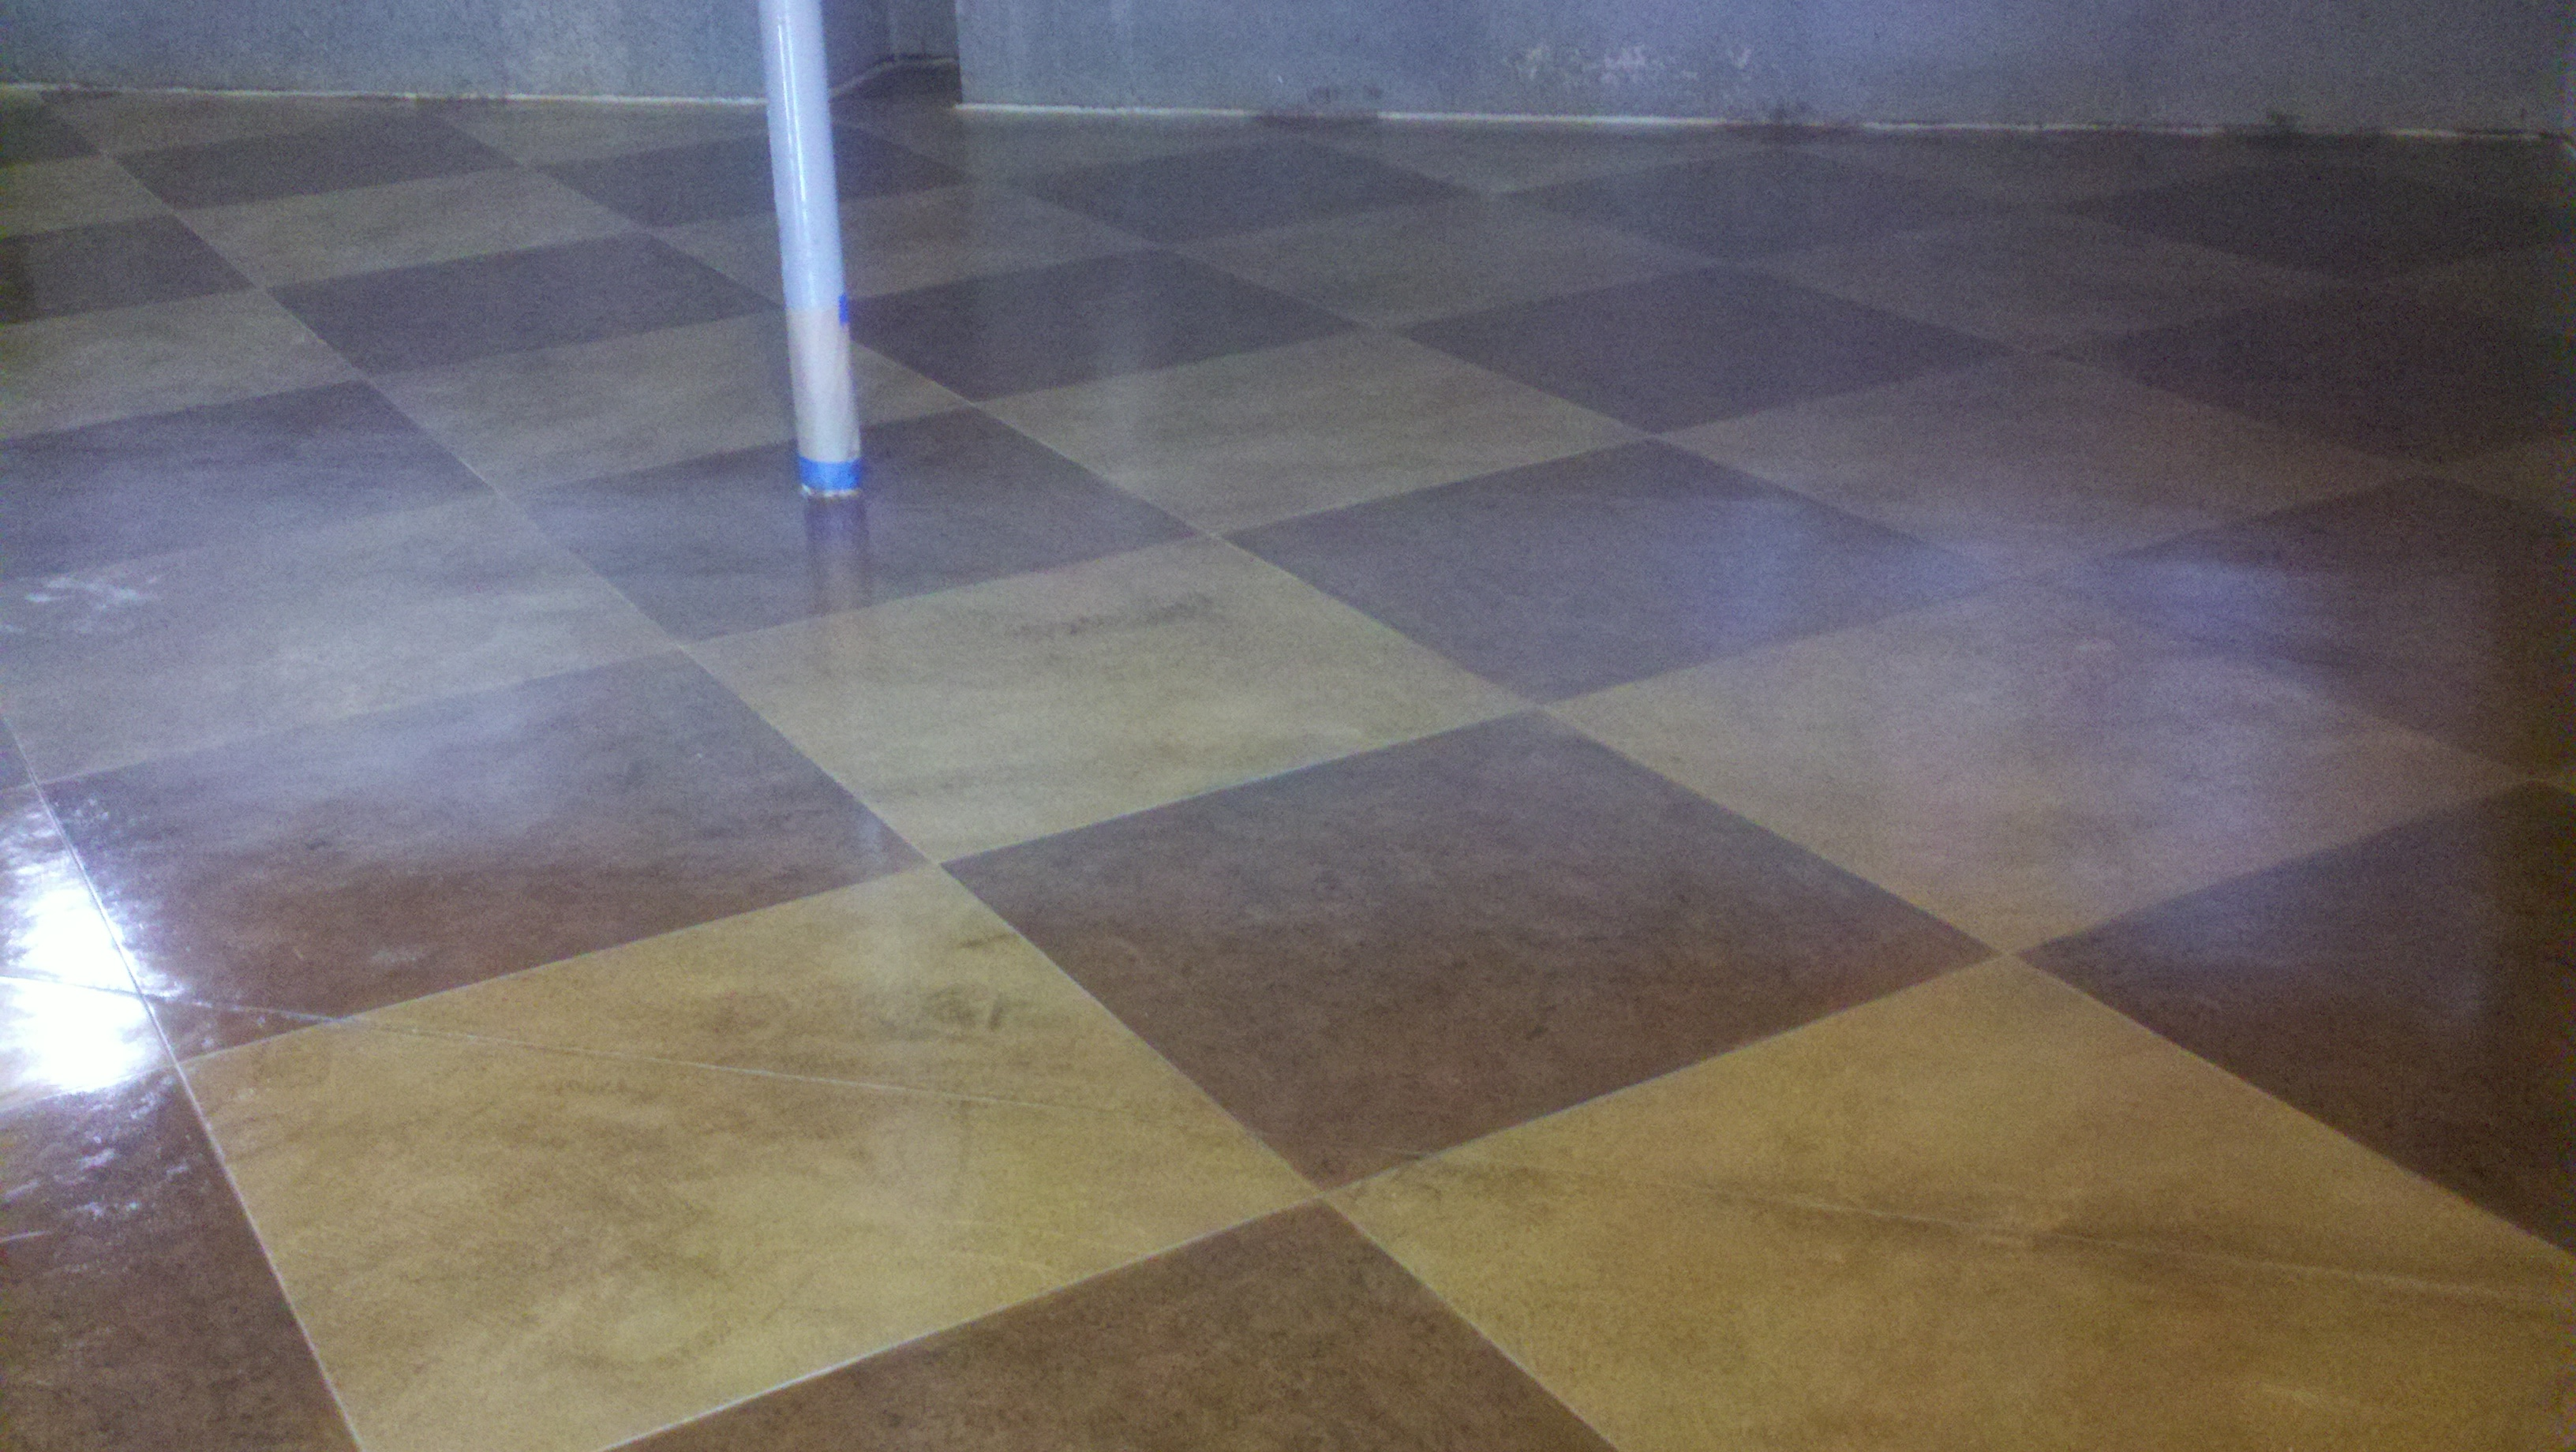 Share this & Basement Floor Repair Flood Resistant Flood proof flooring